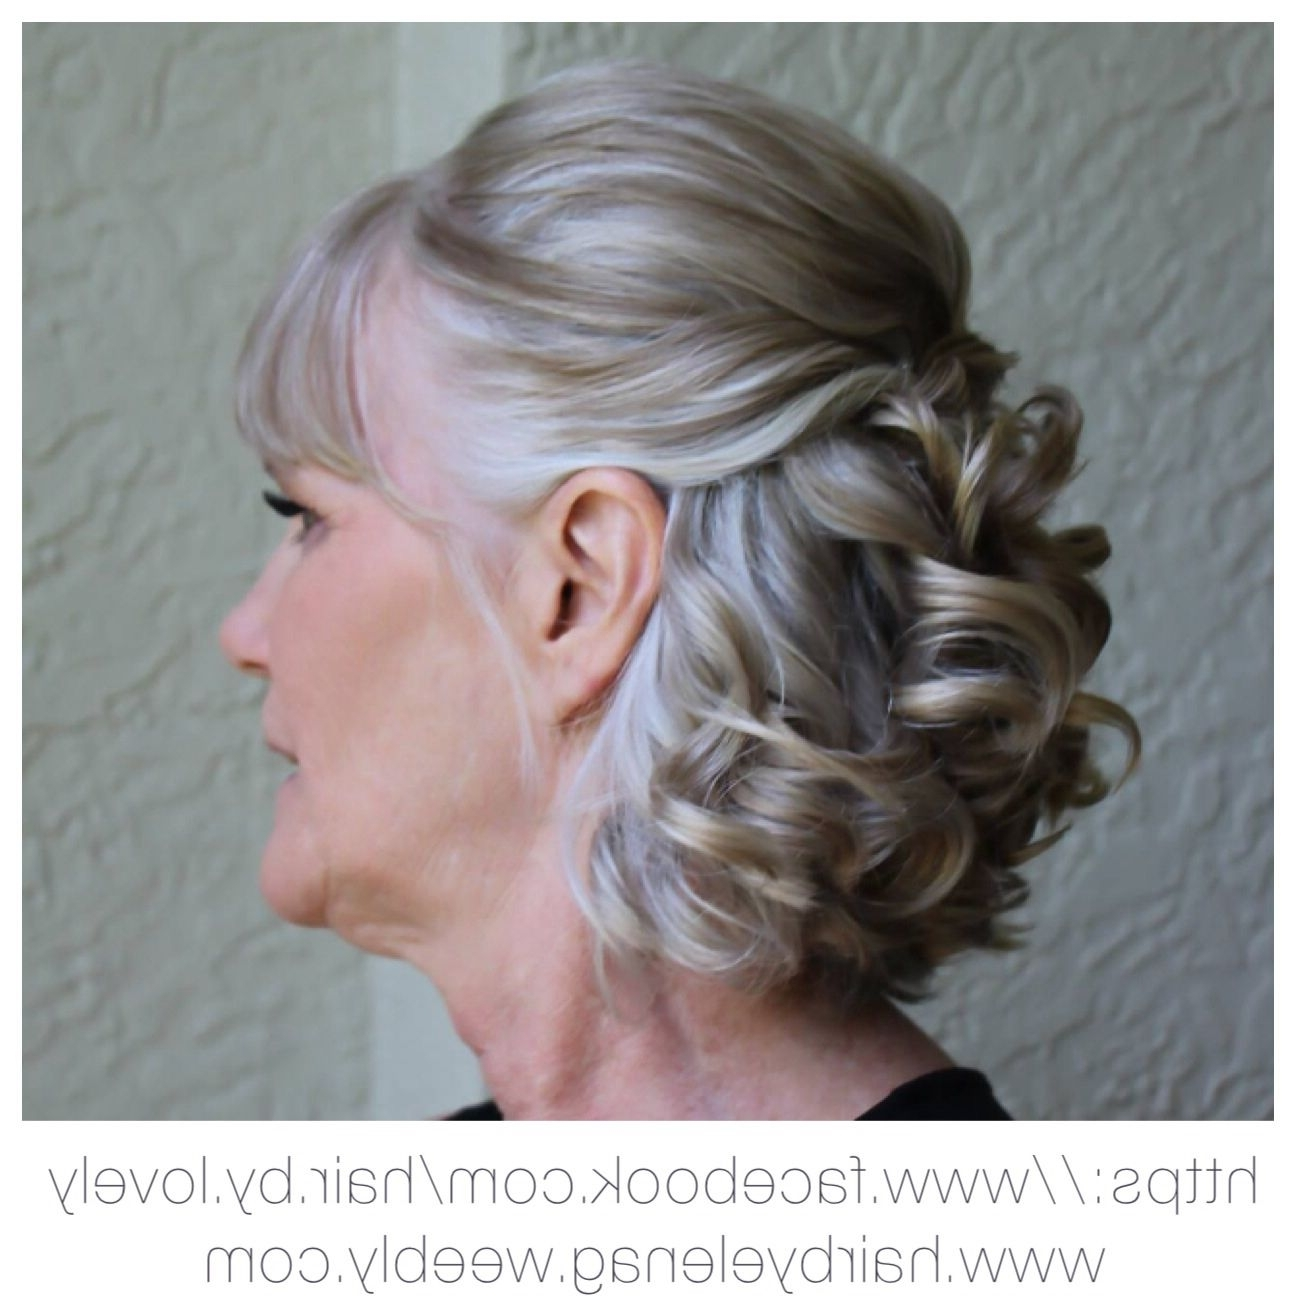 Bridal Hair, Wedding Hair, Mother Of The Groom | Wedding Hair Regarding Updo Hairstyles For Mother Of The Bride Medium Length Hair (View 3 of 15)